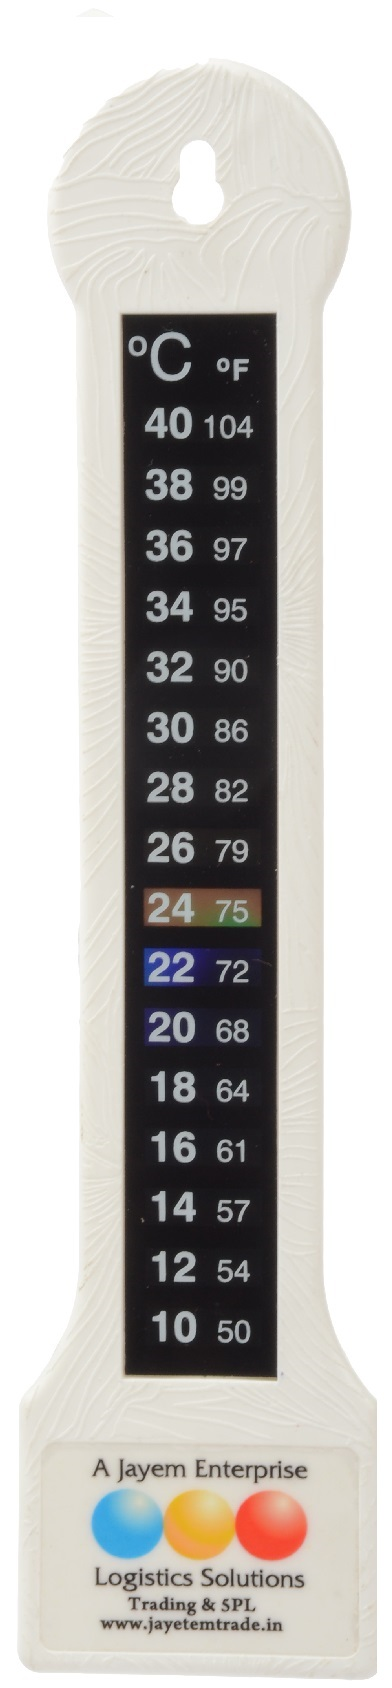 LCR Hallcrest Room Thermometer - Multicolor